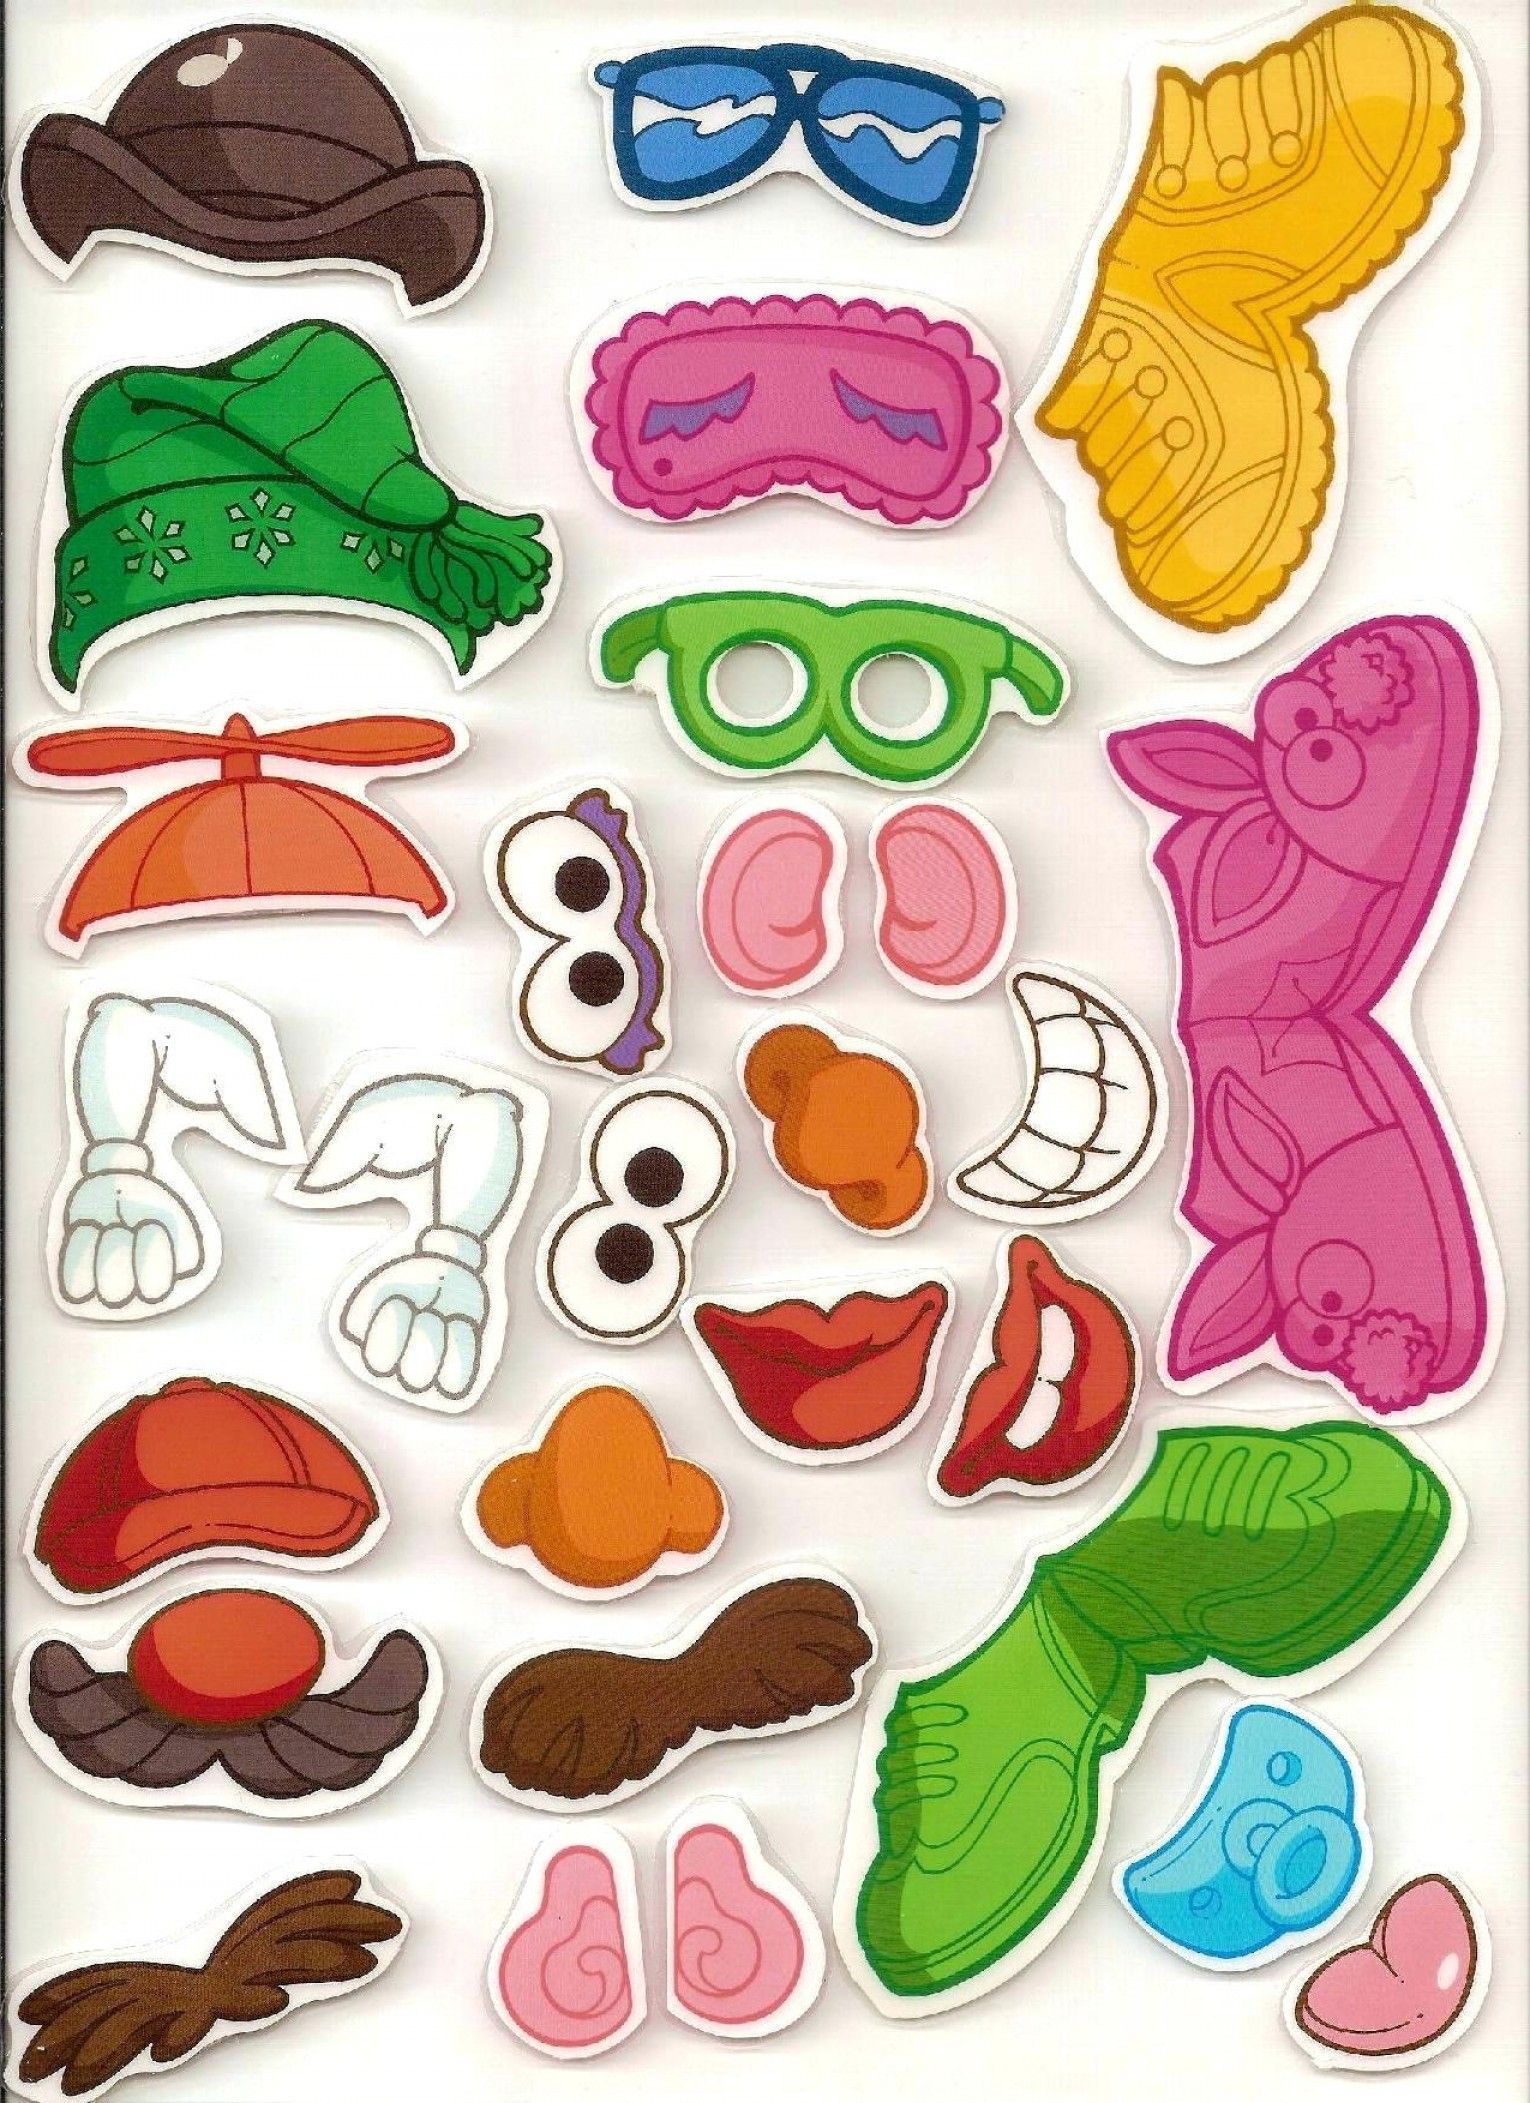 photograph relating to Mr Potato Head Printable Parts referred to as Pin upon Songs